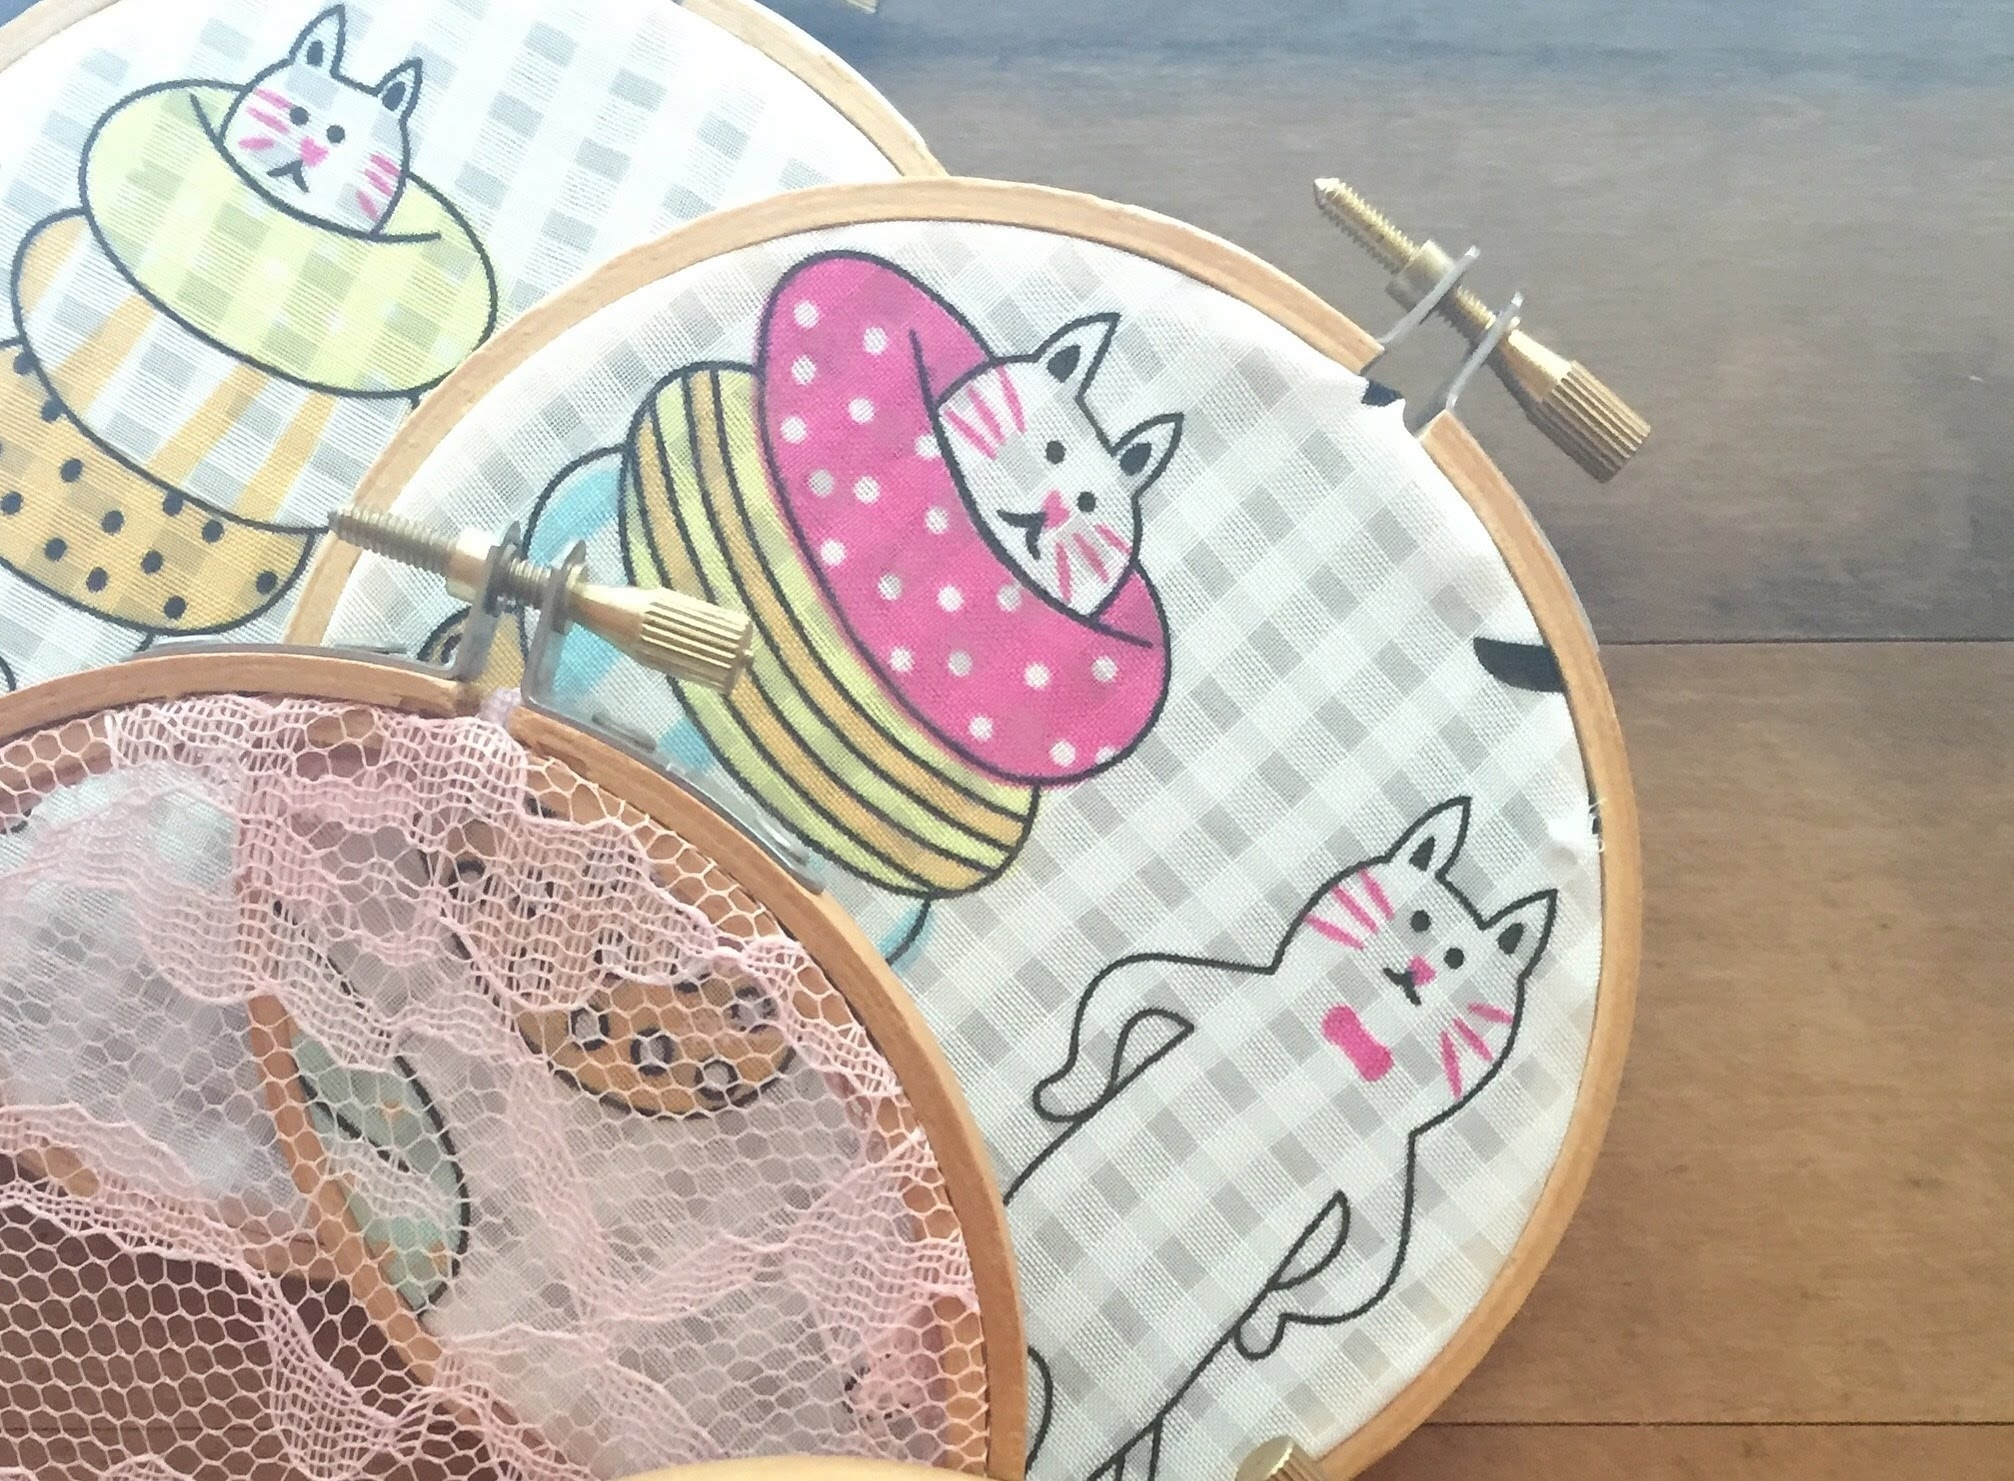 Diy – Fabric Embroidery Hoop Wall Art | Easy & Simple Tutorial For Most Current Fabric Hoop Wall Art (View 4 of 15)